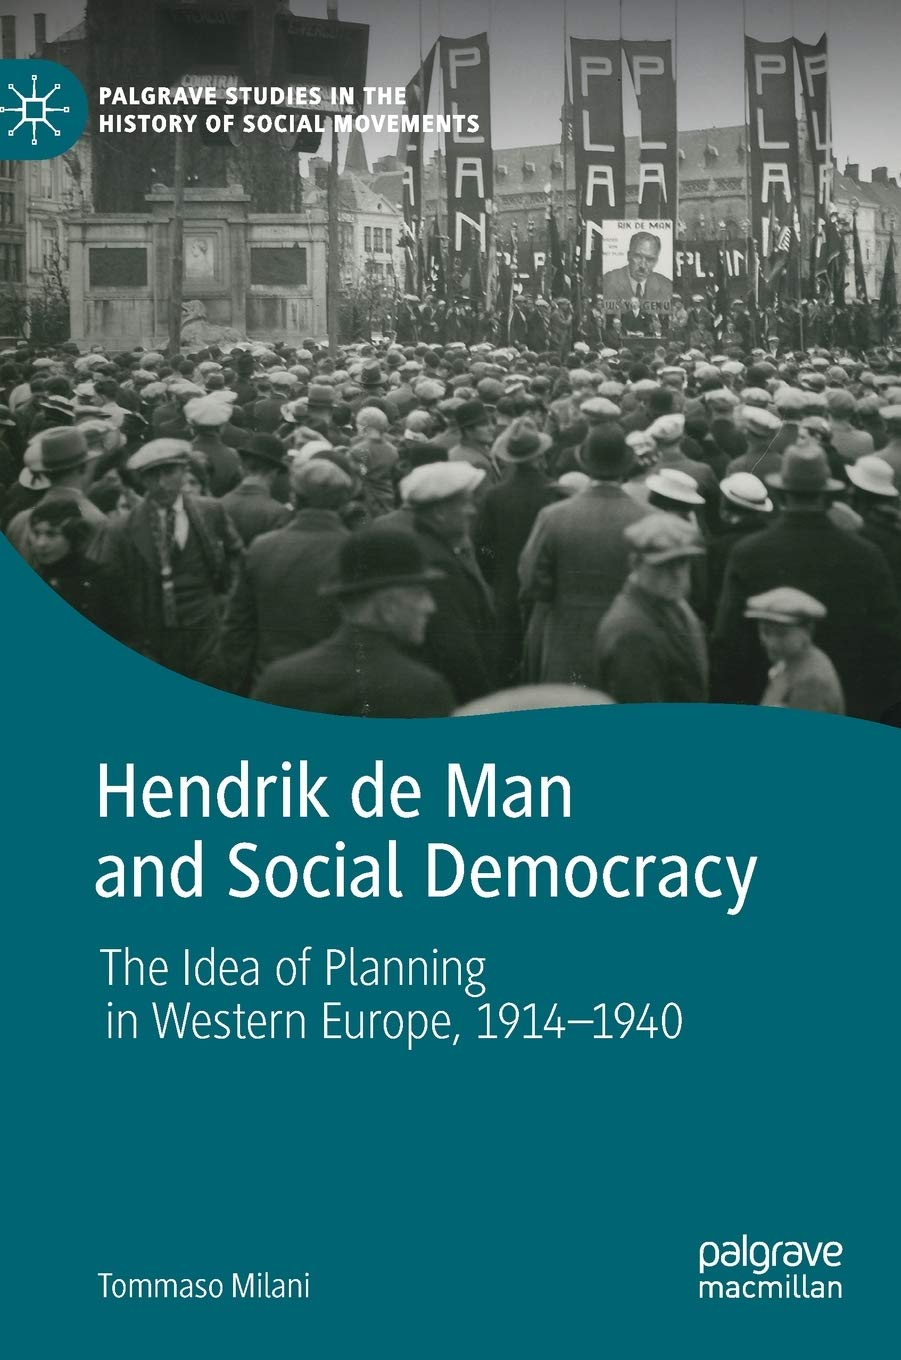 Hendrik de Man and social democracy : the idea of planning in Western Europe, 1914-1940